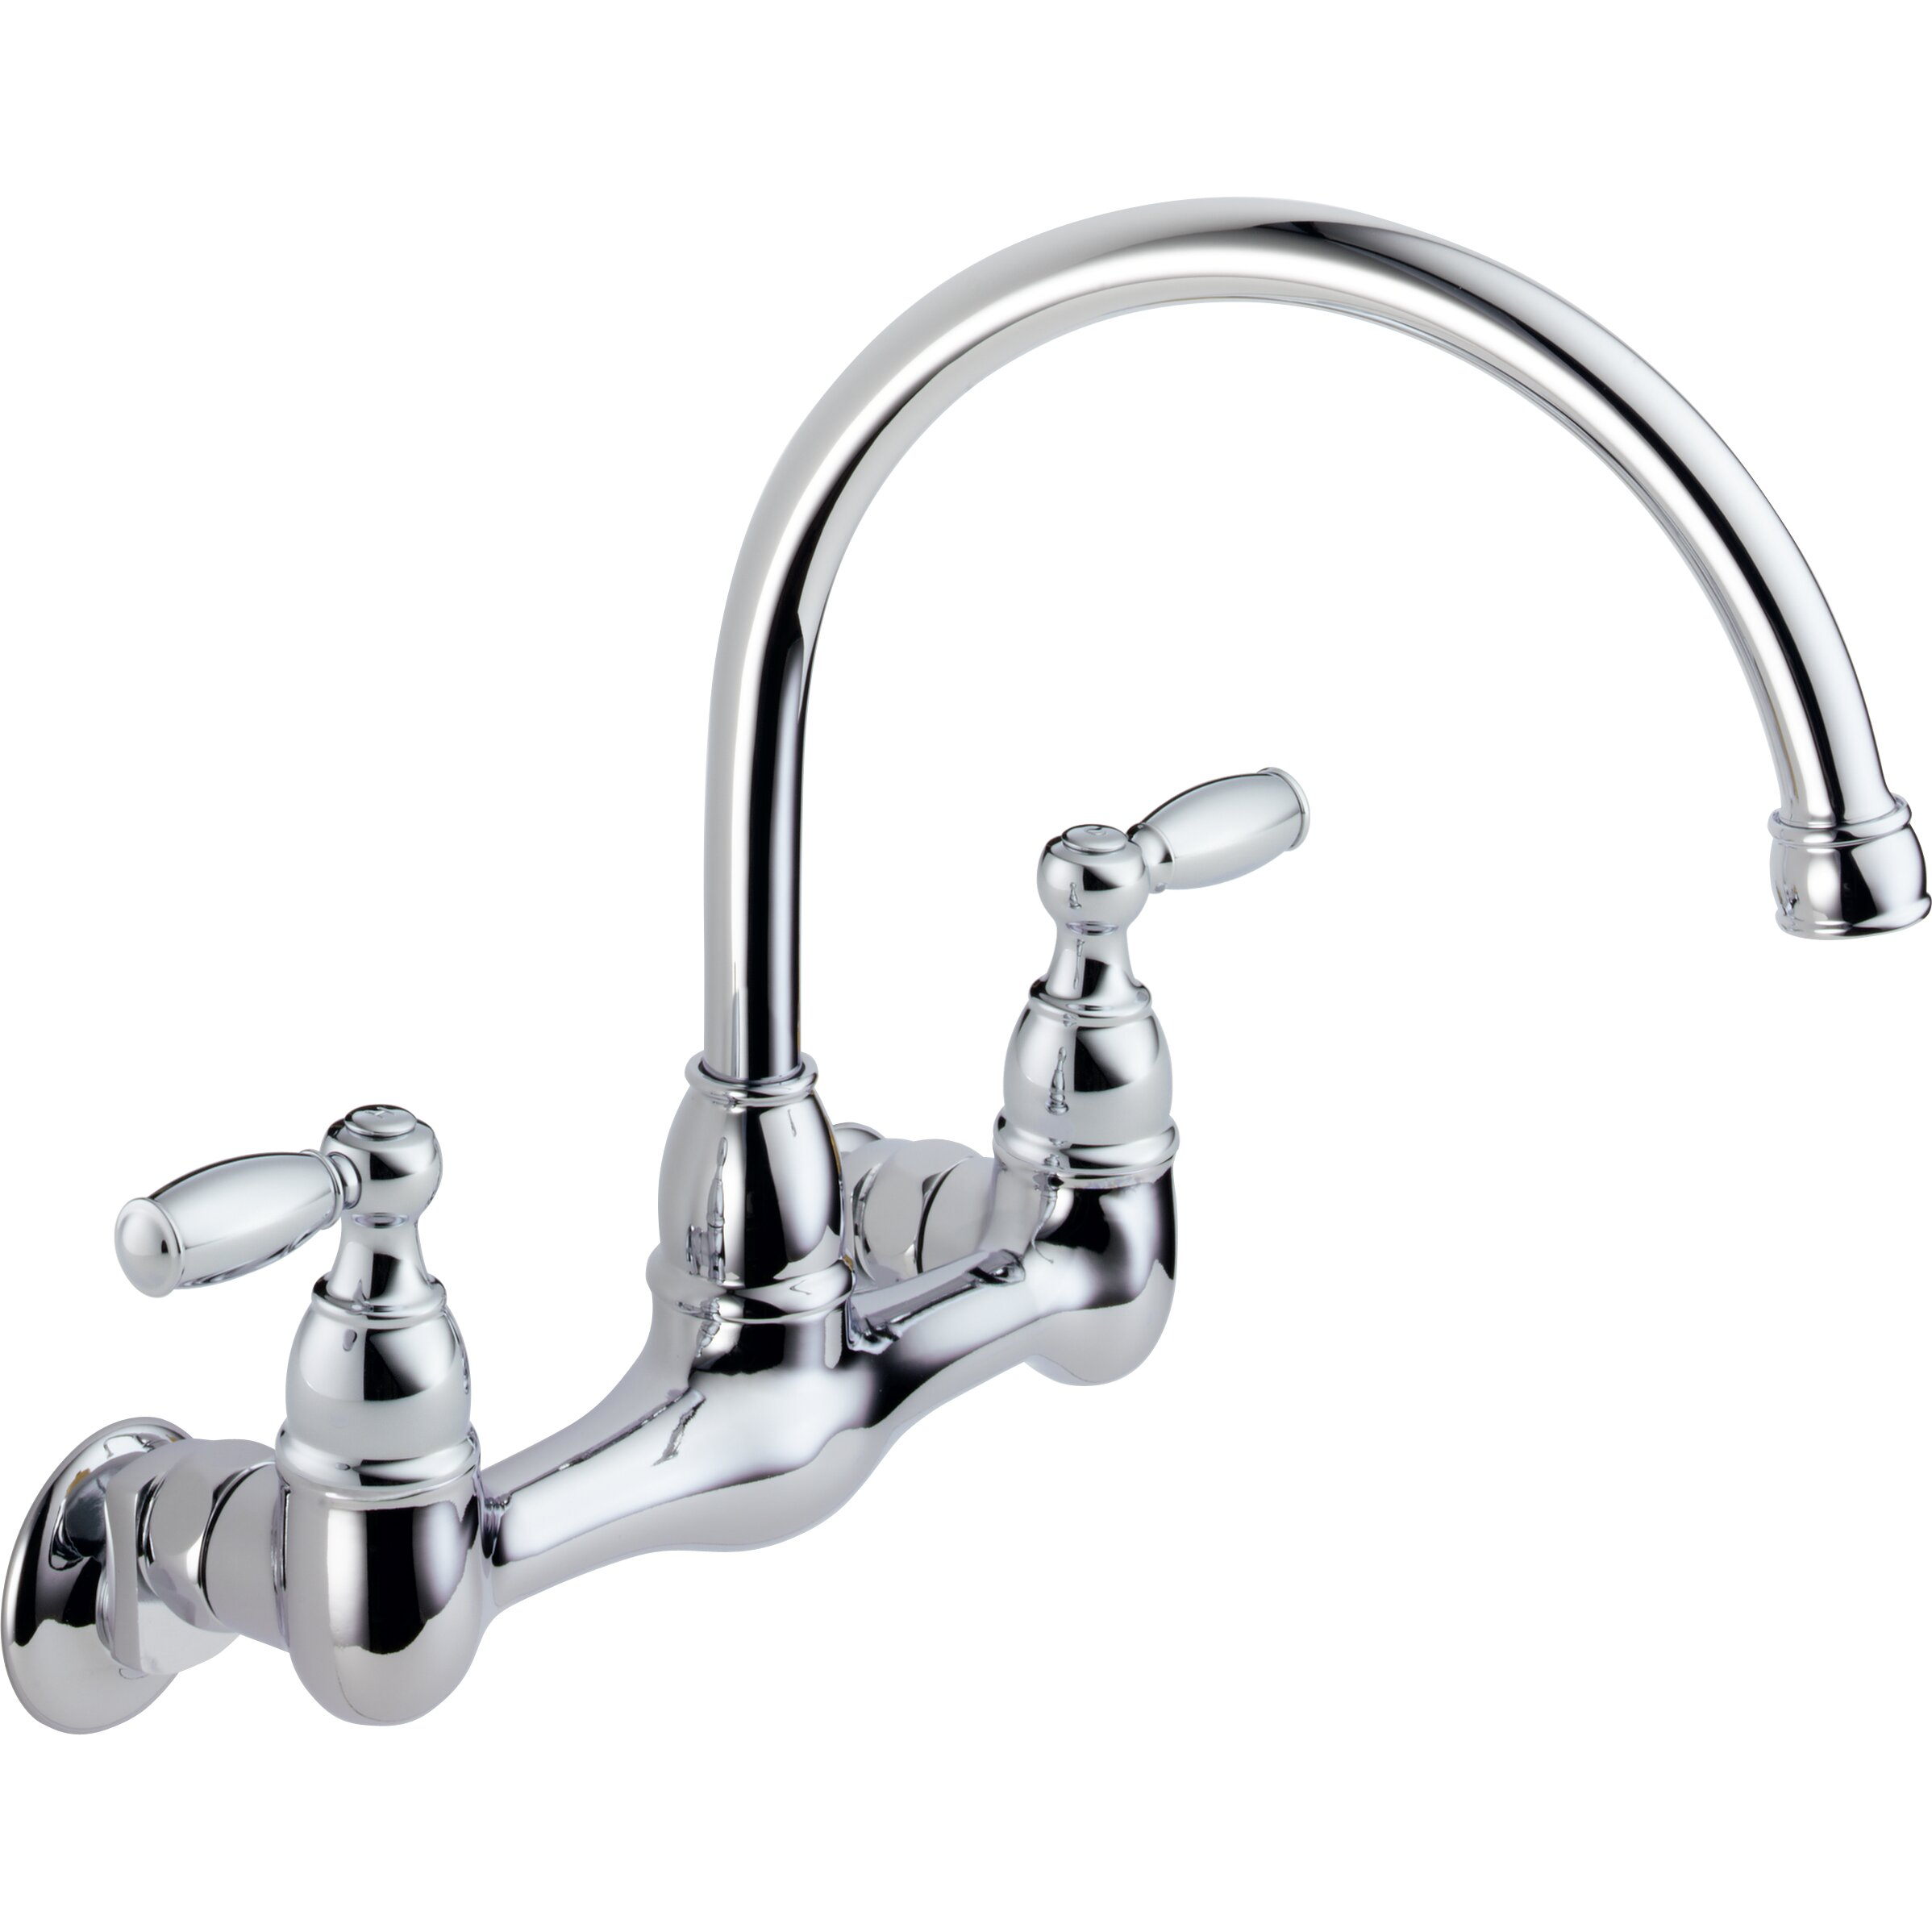 Peerless Faucets Two Handle Wall Mounted Kitchen Faucet Reviews Wayfair